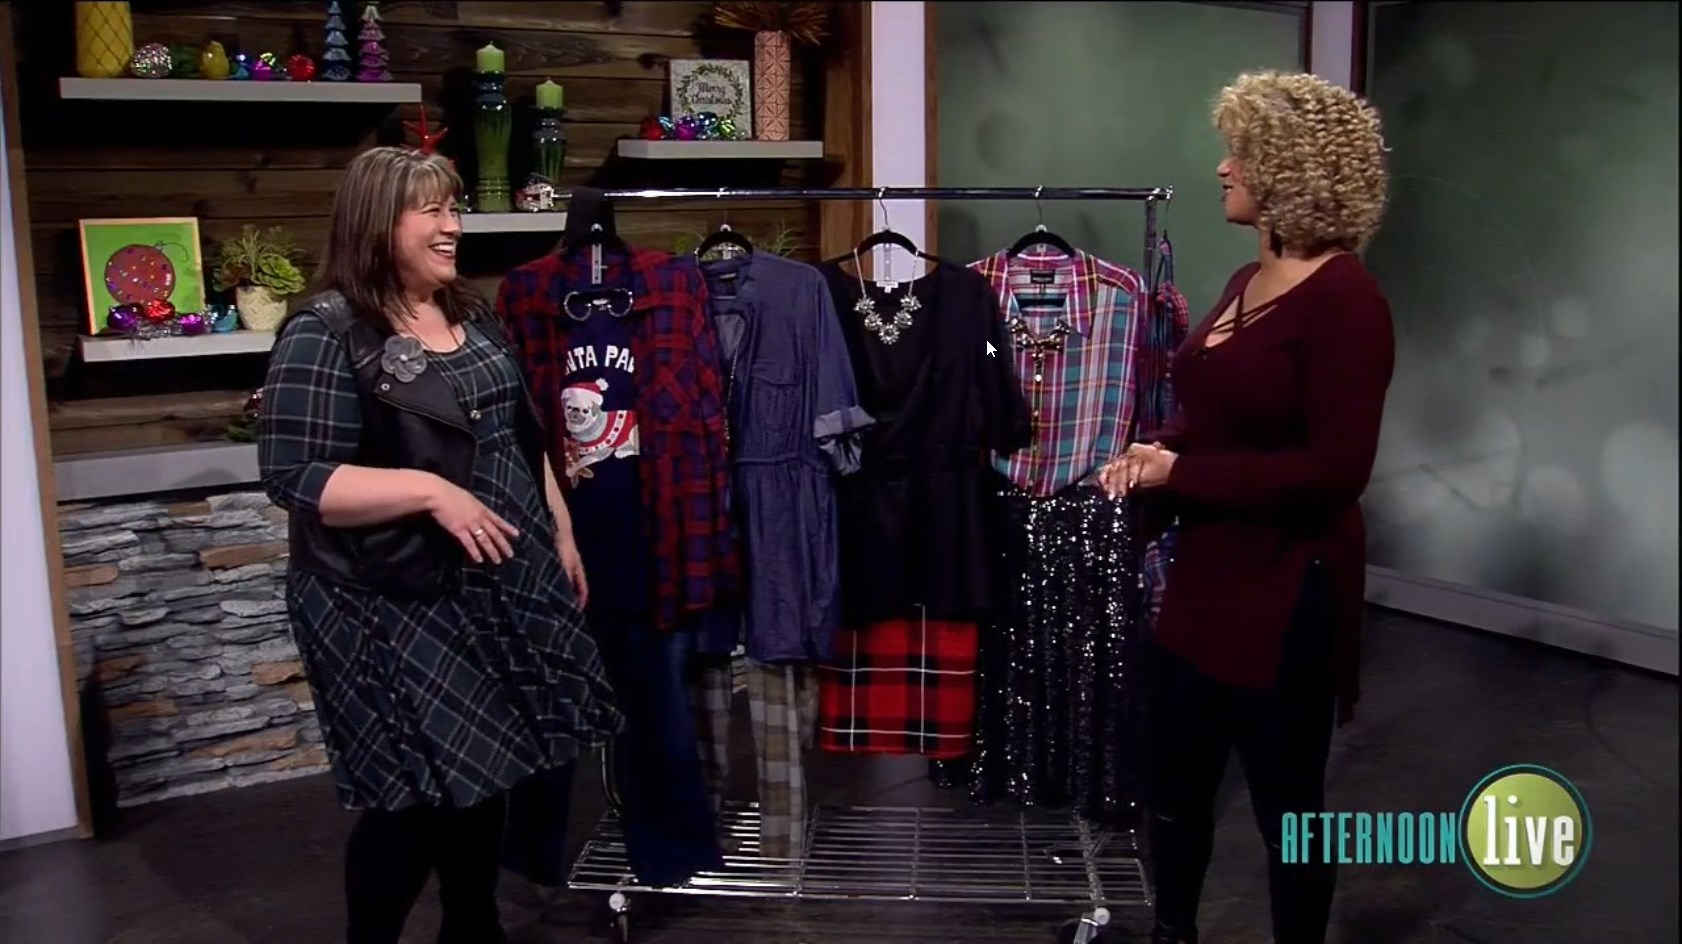 KATU Afternoon Live (12/06/2019) Mad About Plaid - DivineMrsDiva.com